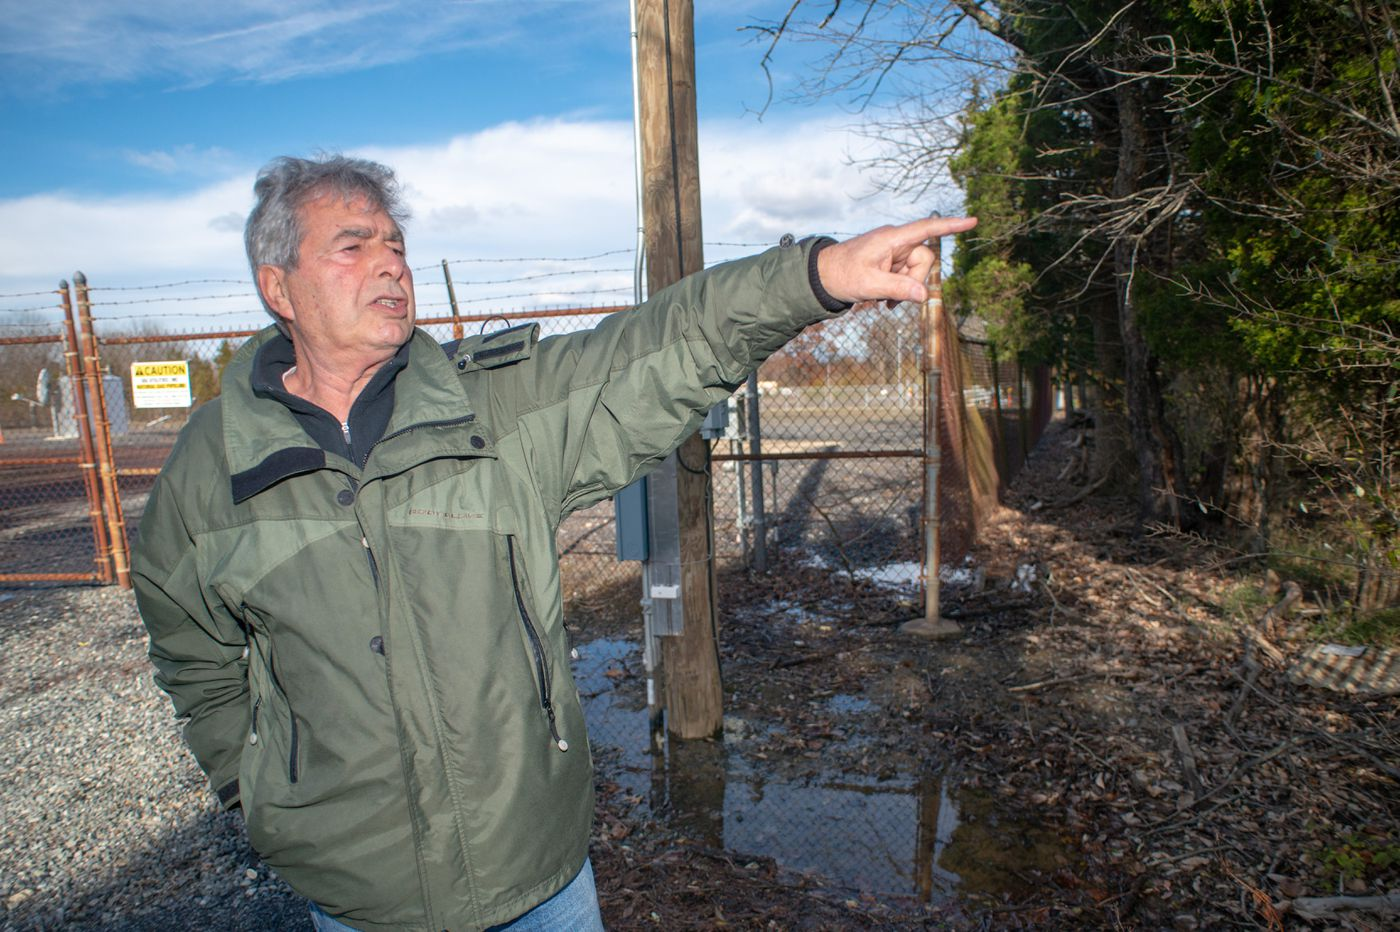 Upper Bucks residents are scrambling to oppose Adelphia, the pipeline coming to their backyards